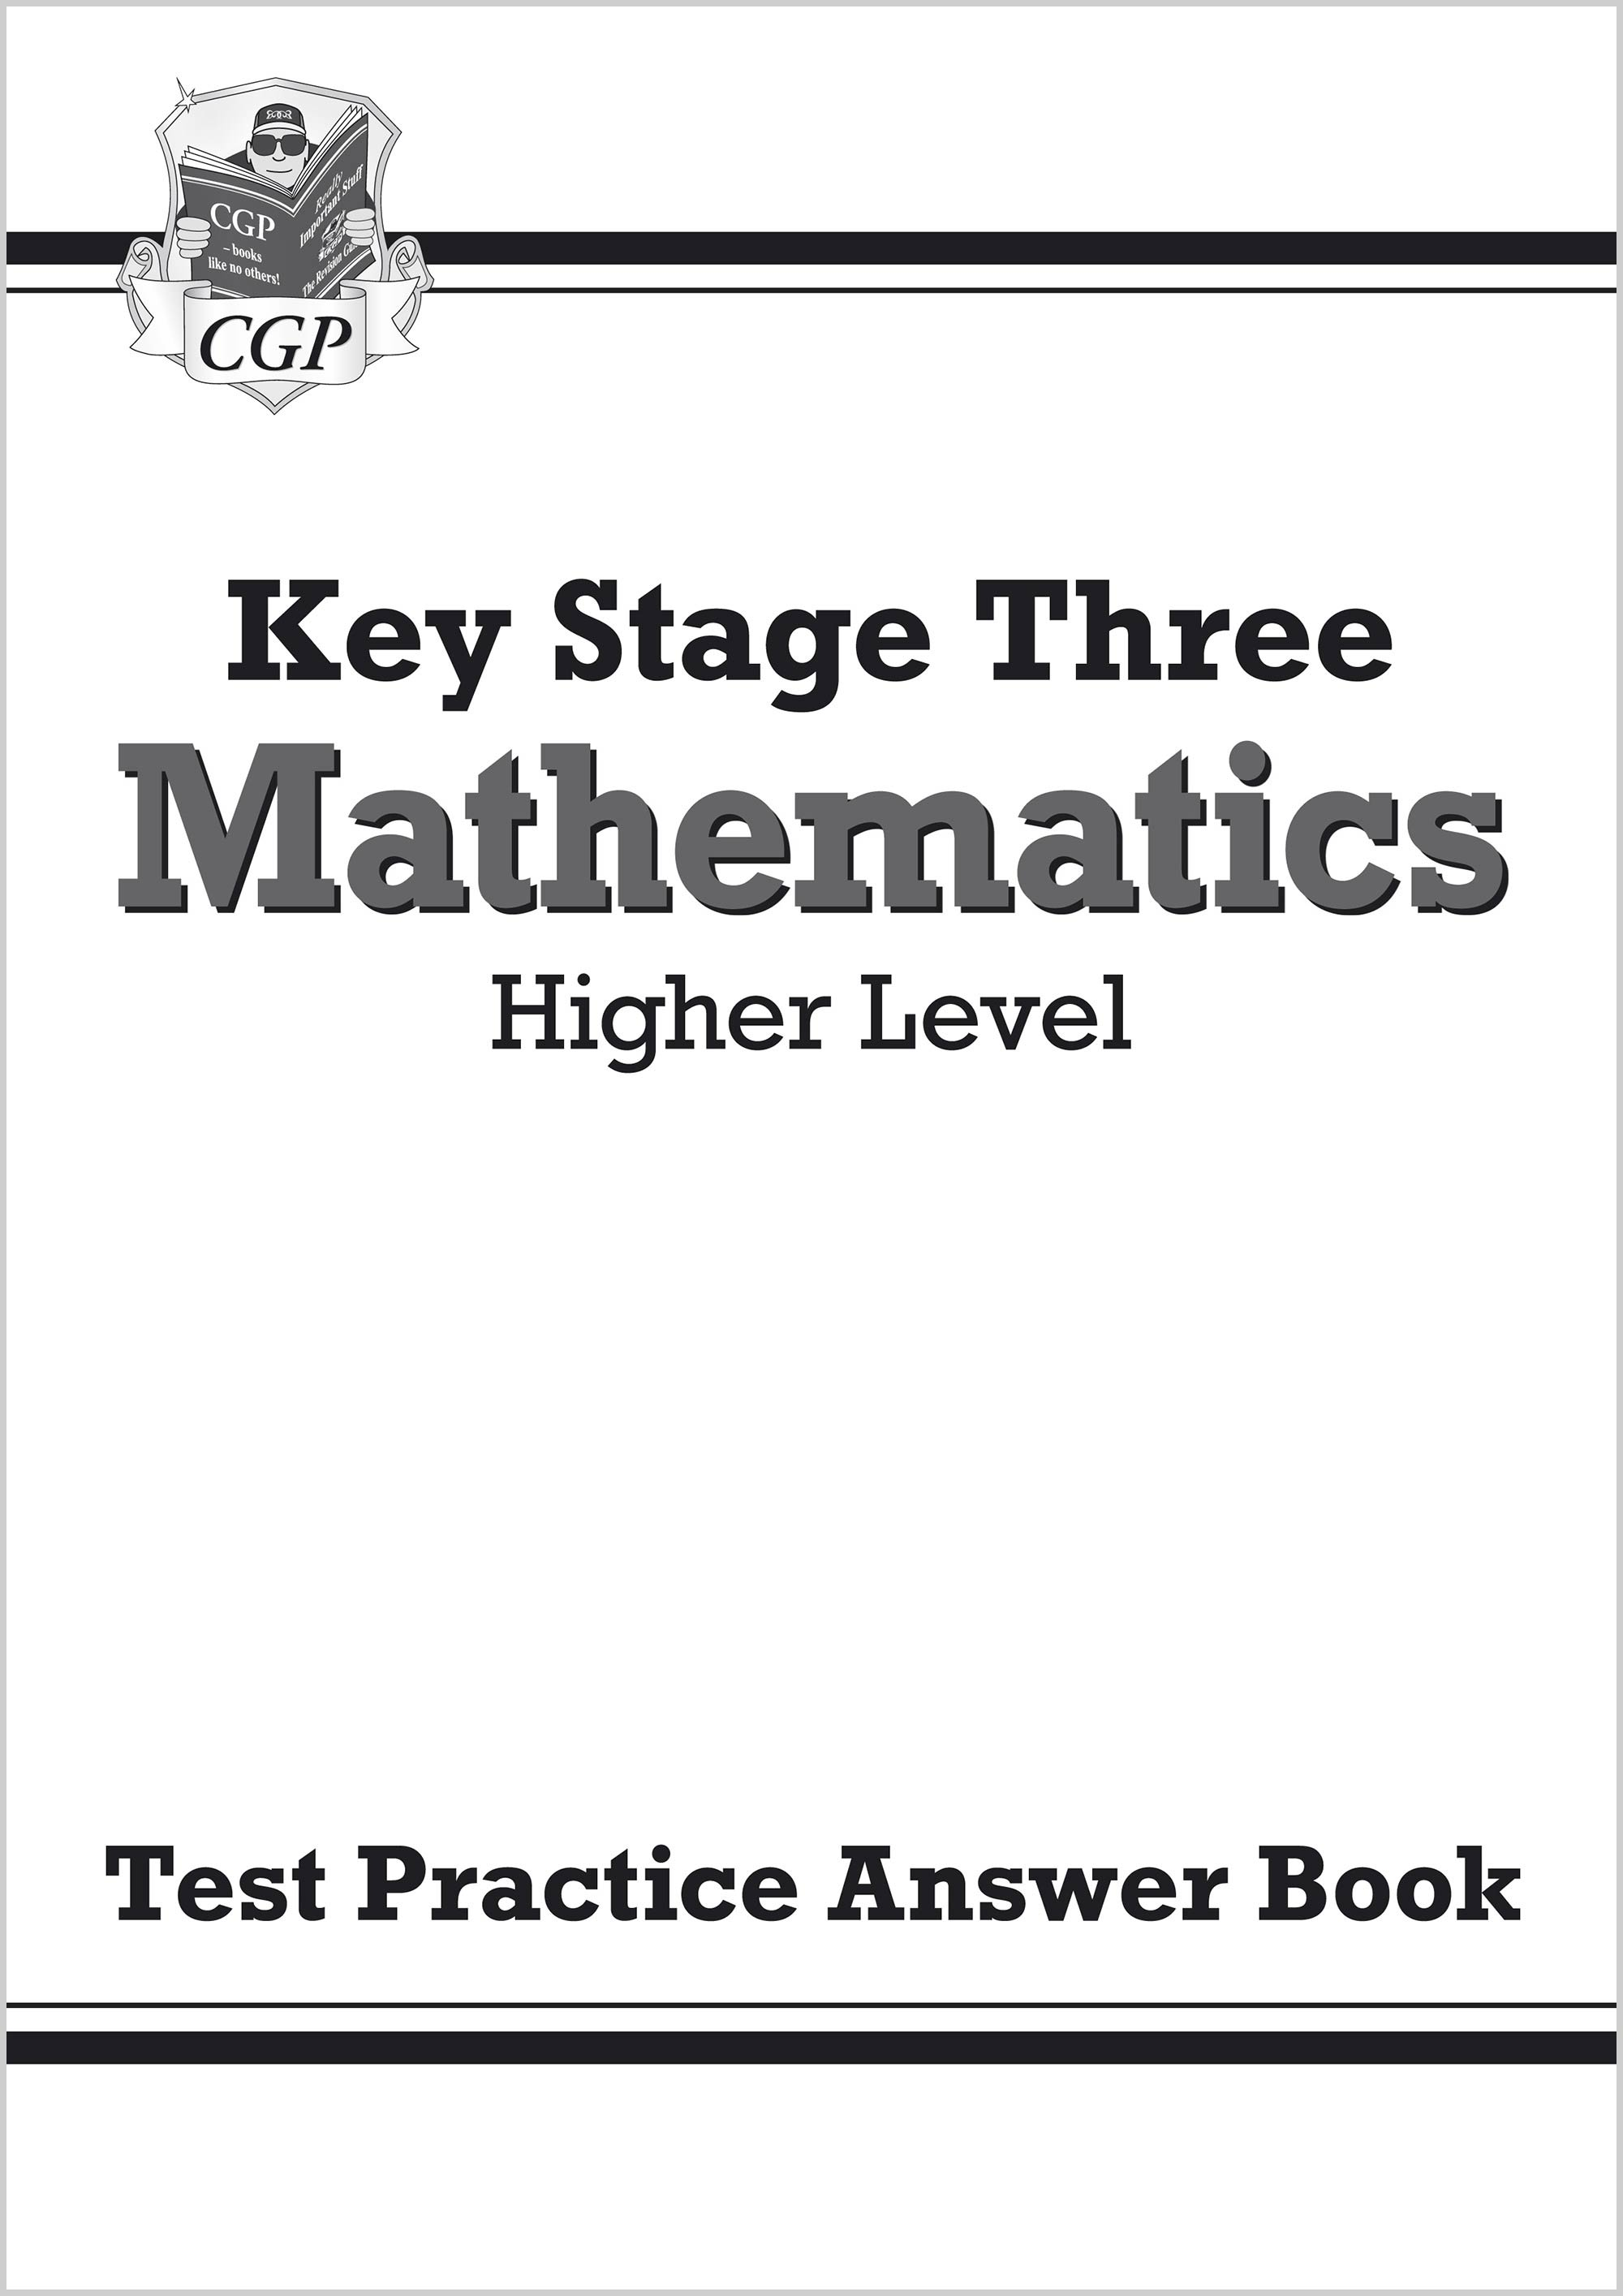 MHQA32 - KS3 Maths Answers for Test Practice Workbook - Higher